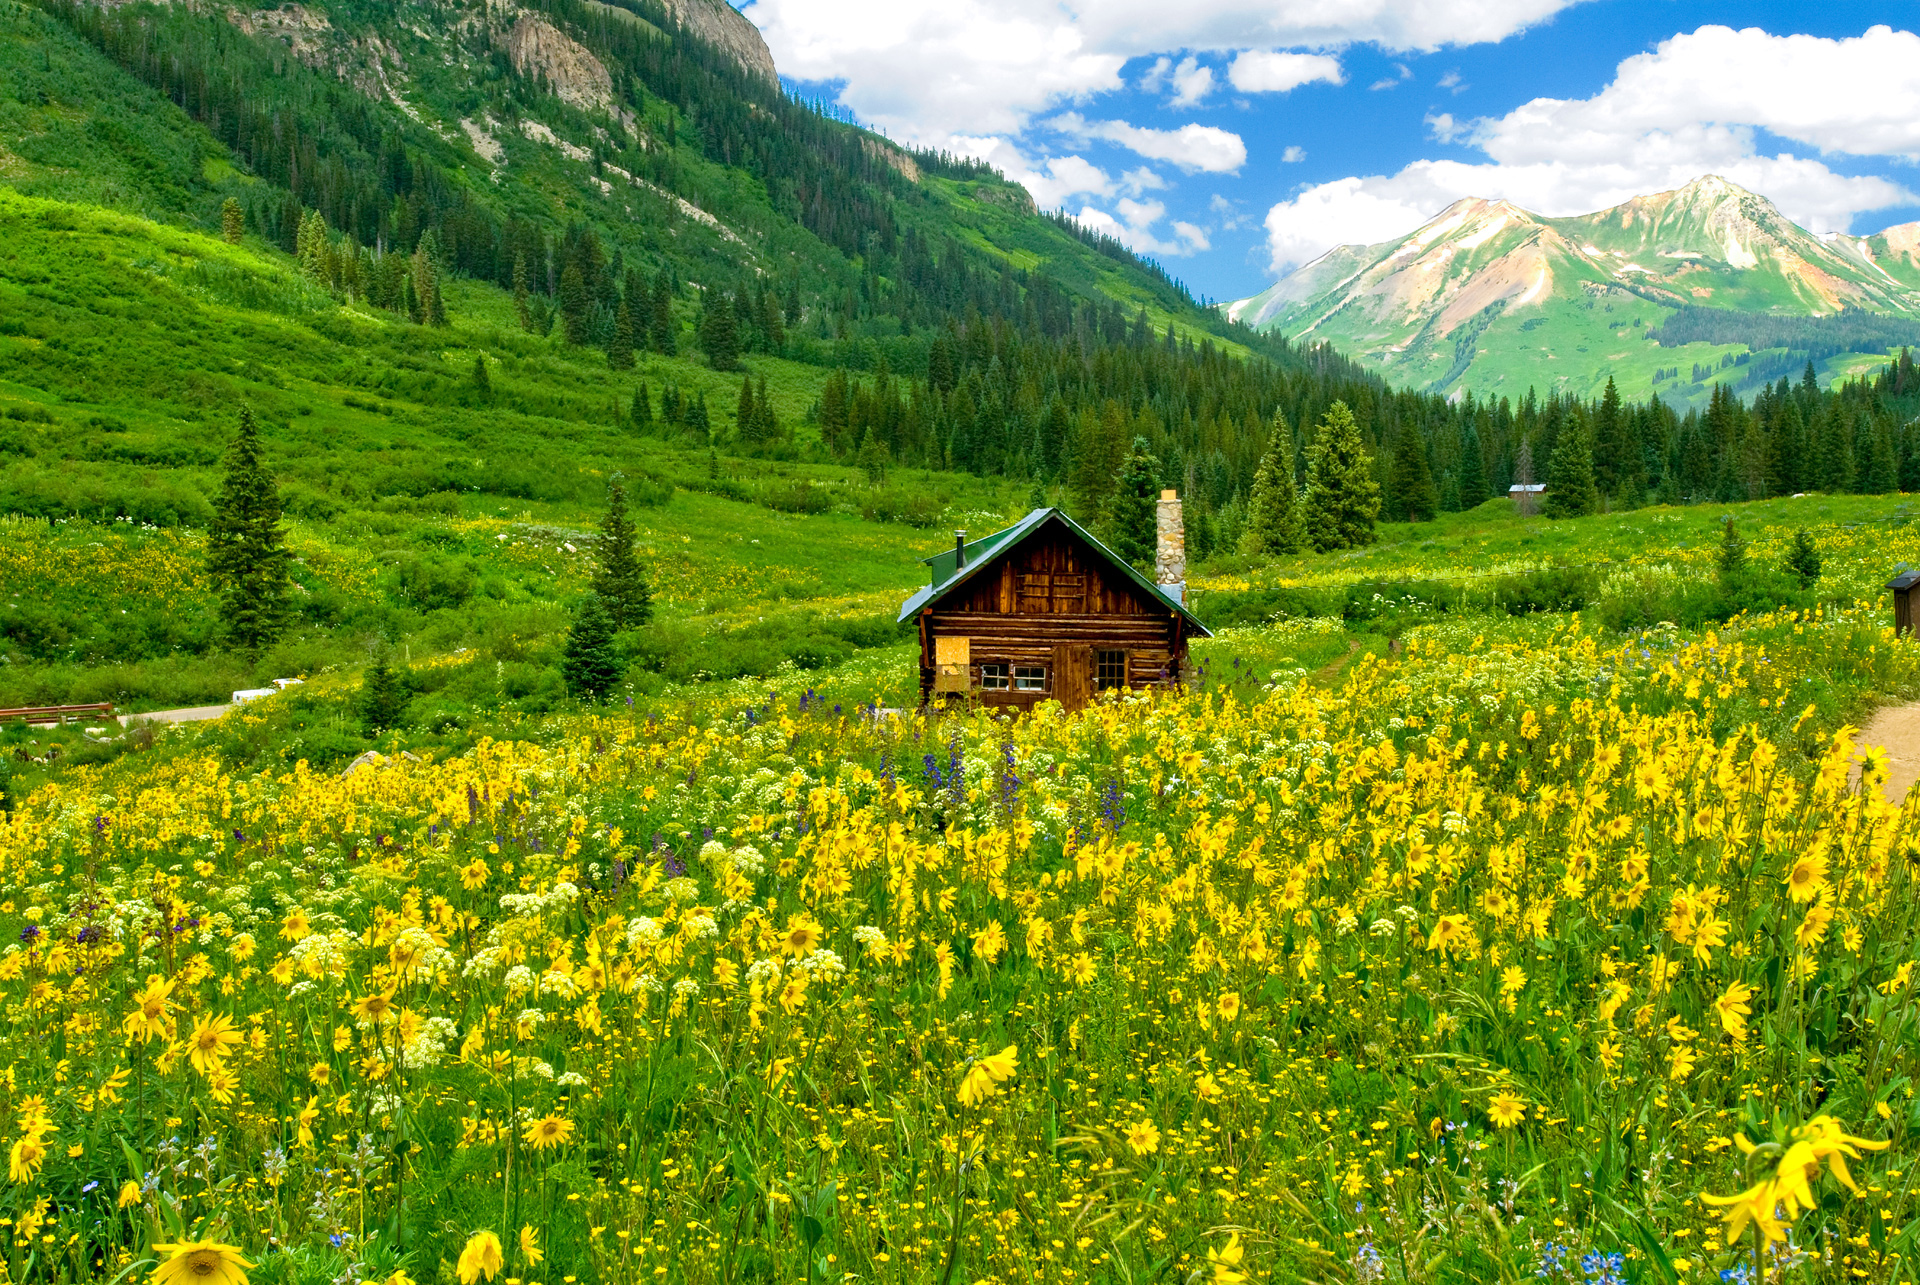 Wildflowers by Mt Crested Butte